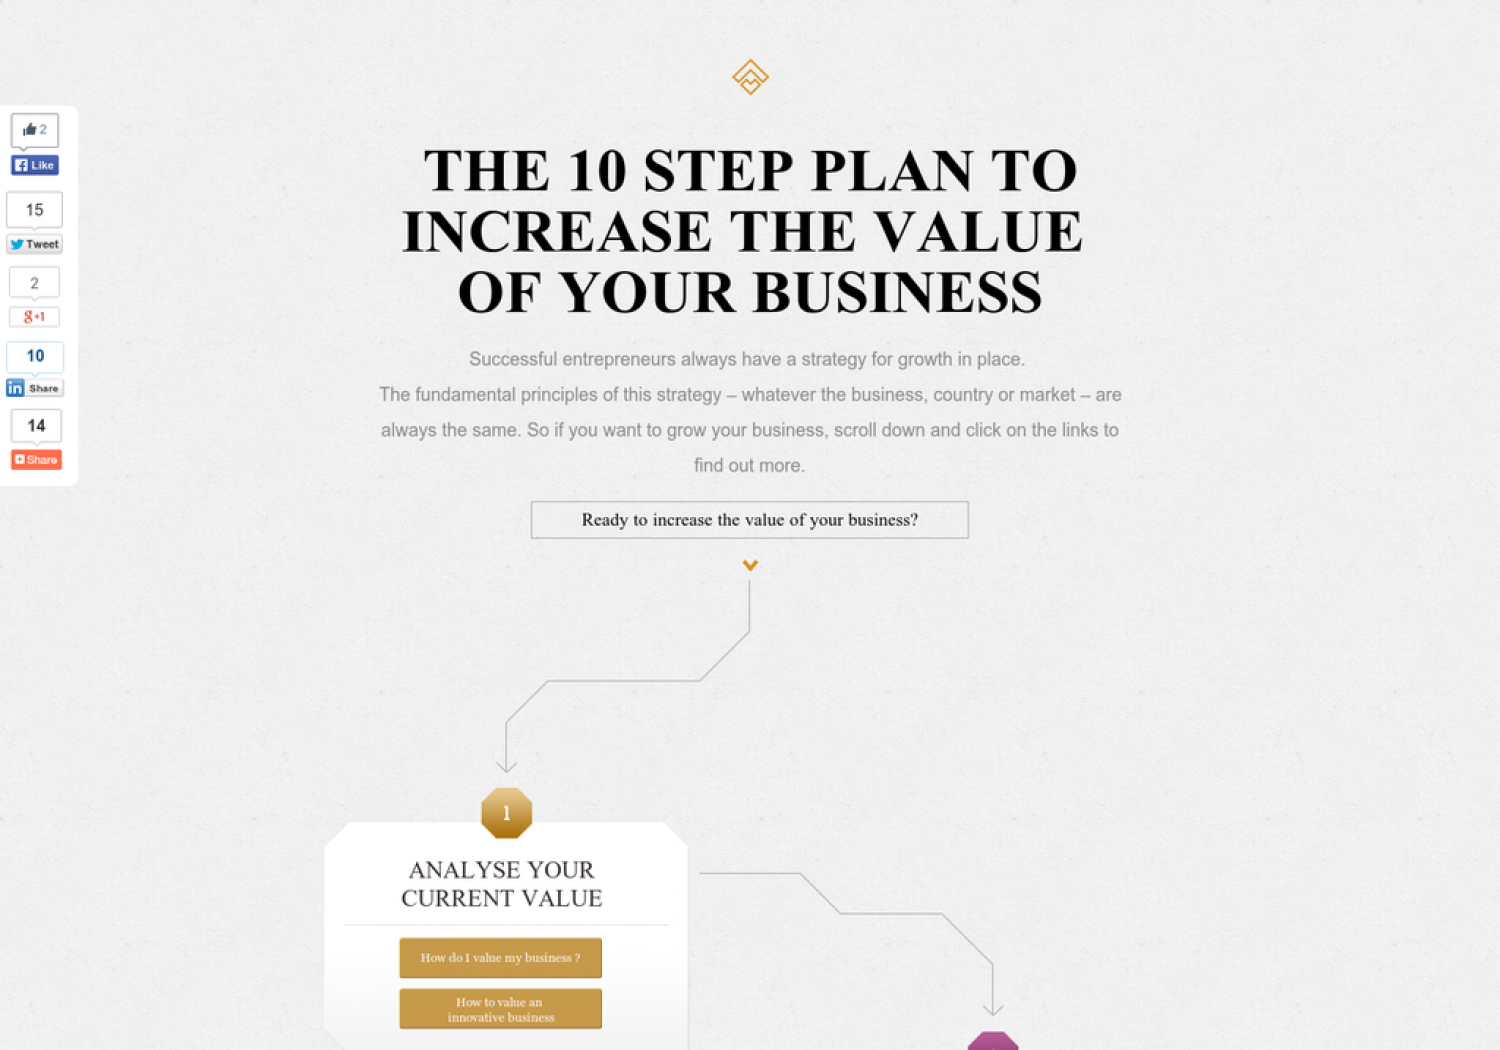 The 10 Step Plan To Increase The Value Of Your Business Infographic